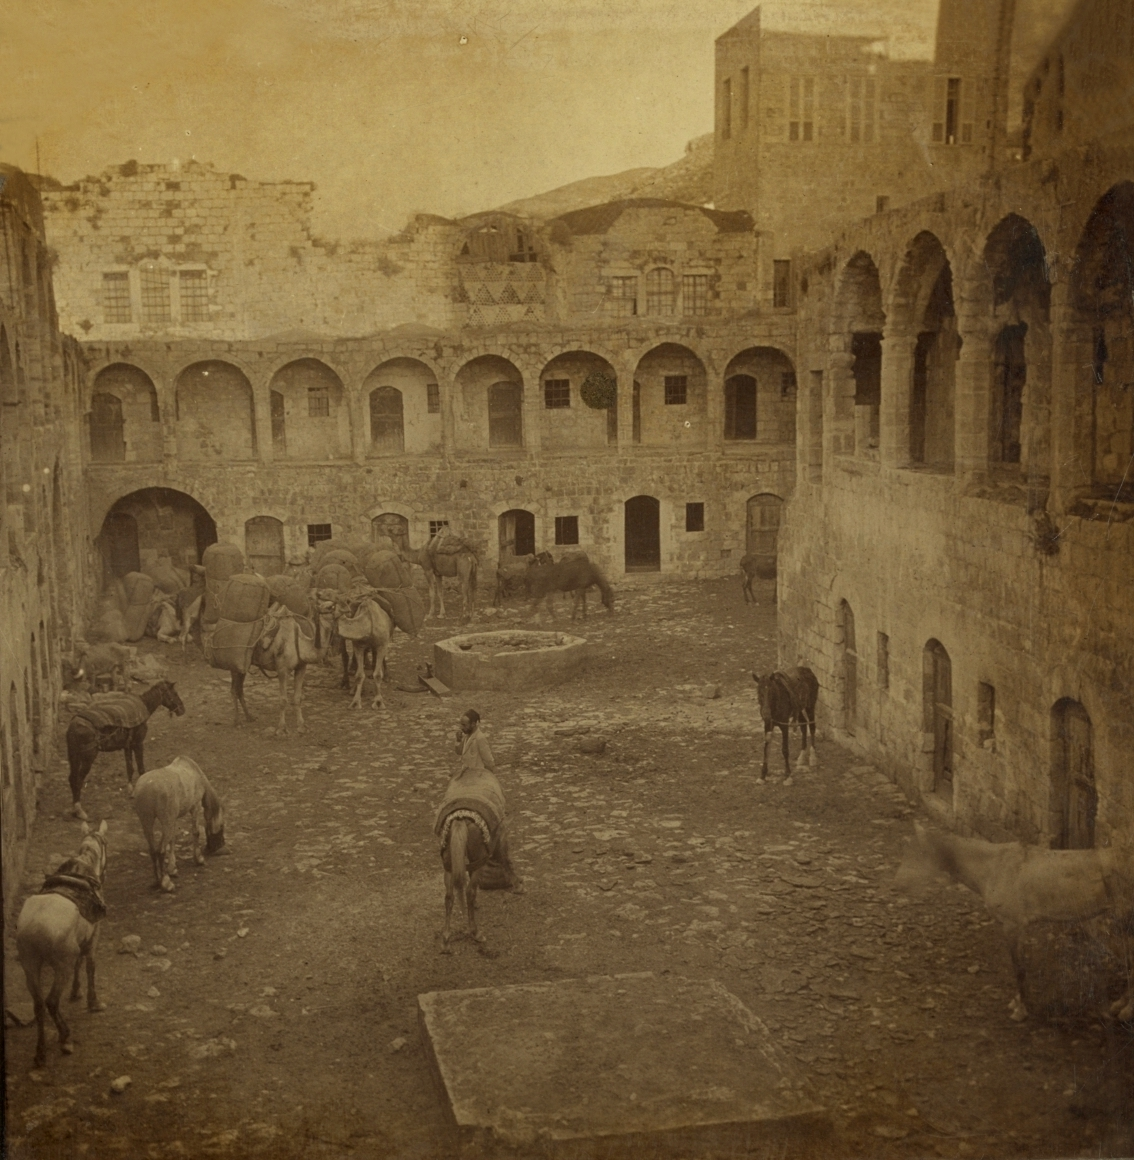 Nablus - نابلس : NABLUS - Late 19th, early 20th c. 24 - Courtyard of old Kahn, showing loaded caravan, 1905